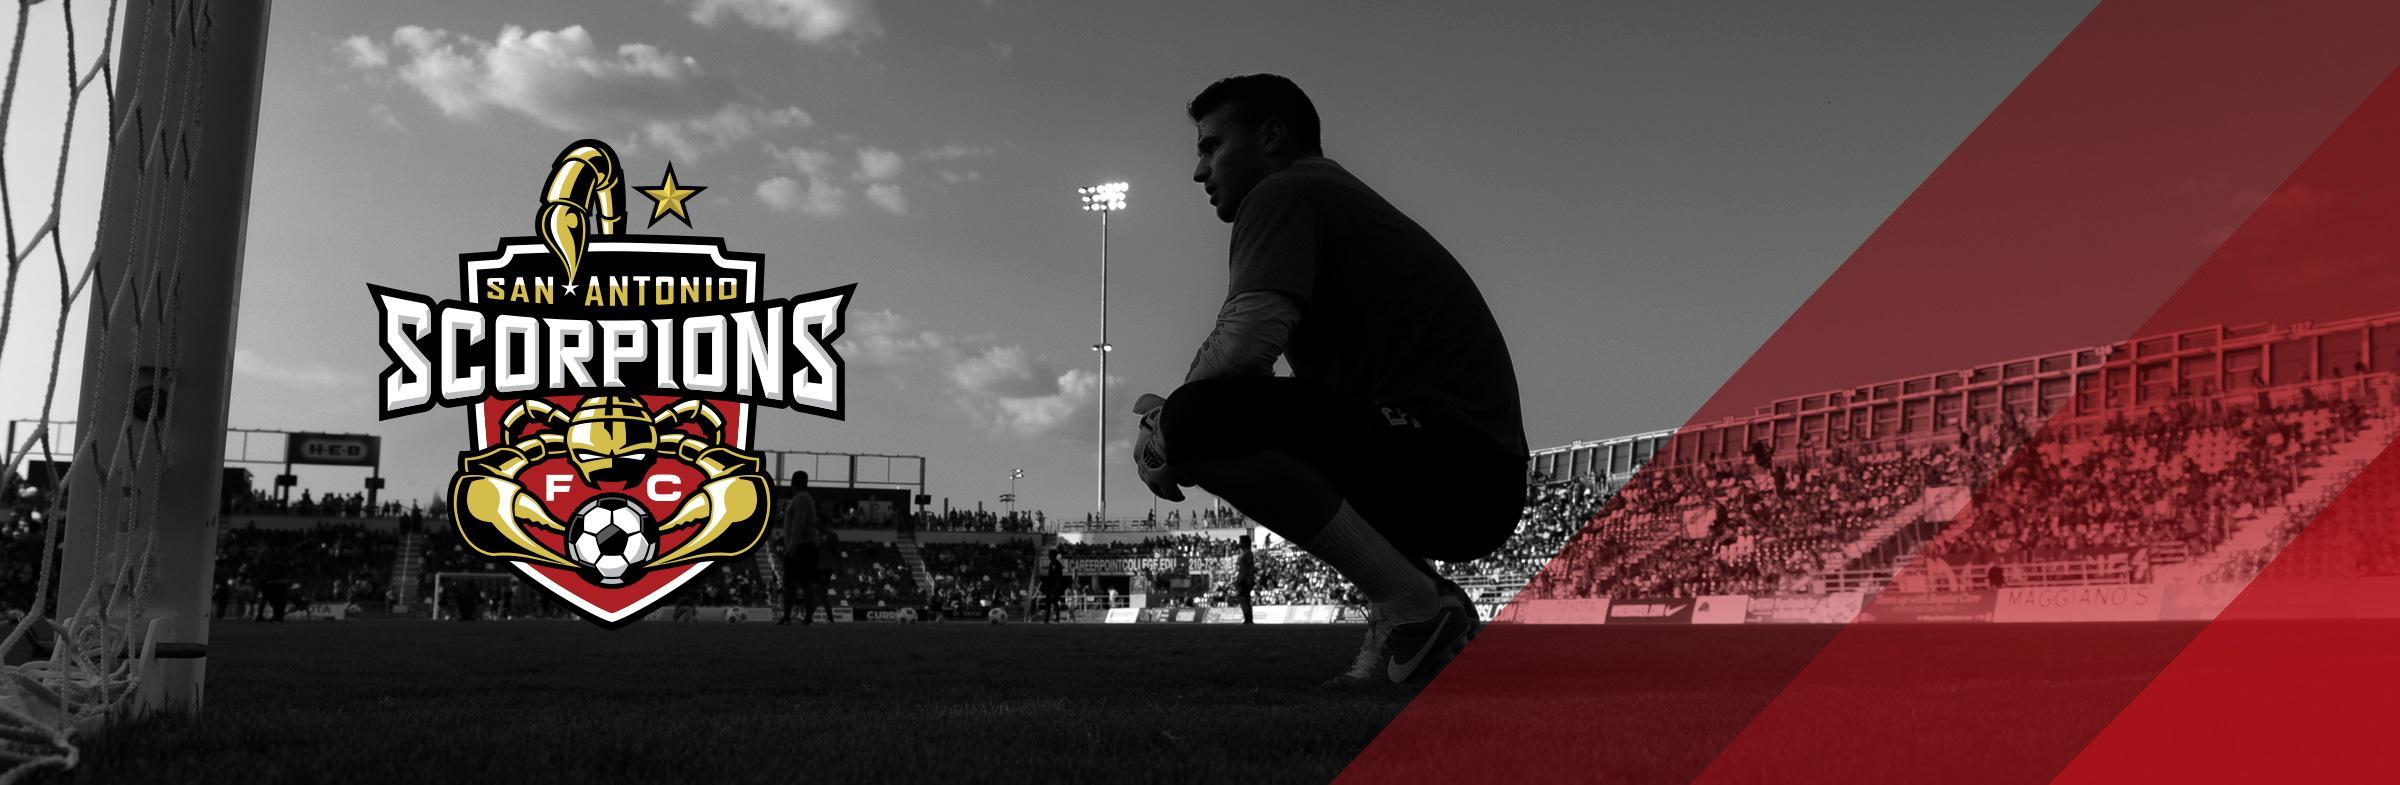 San Antonio Scorpions Graphic Design